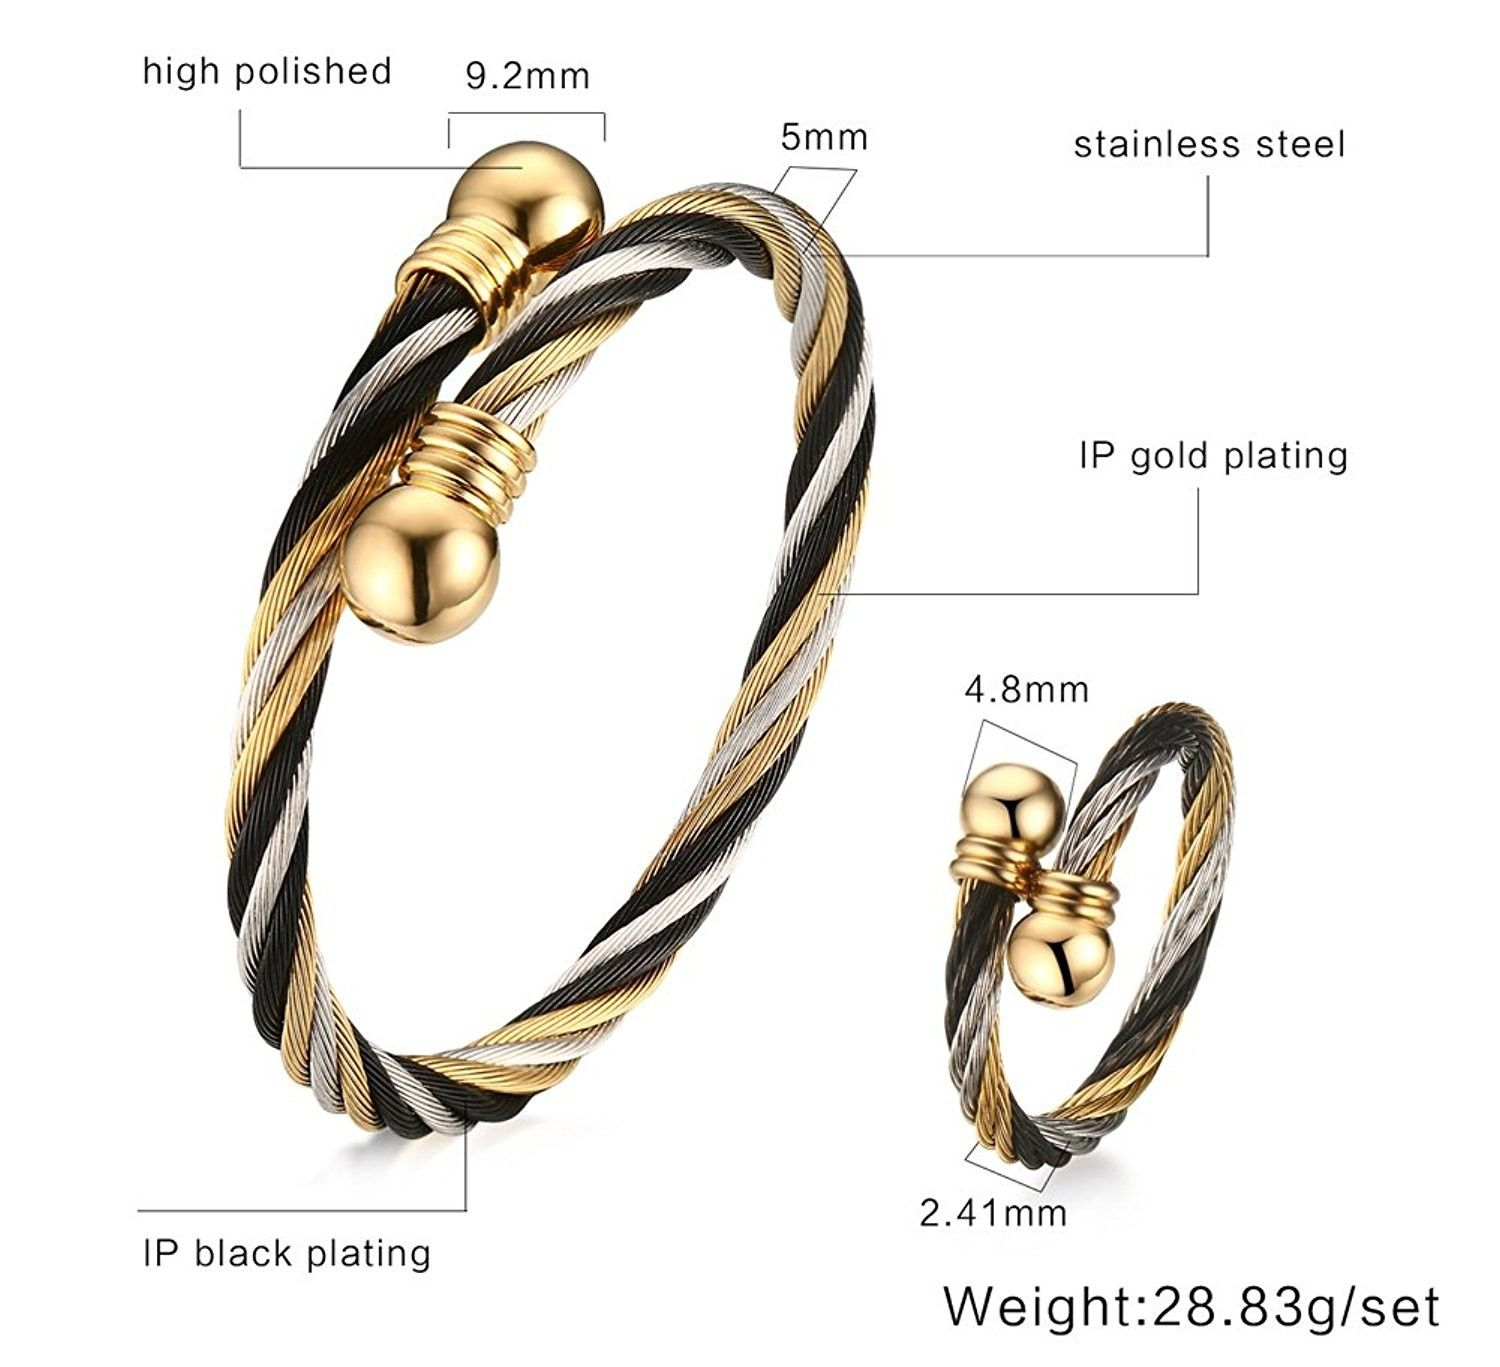 Two Silver Carbon Fiber Mesh Design Cuff links Gold Plated Backs Details about  /1 Pair